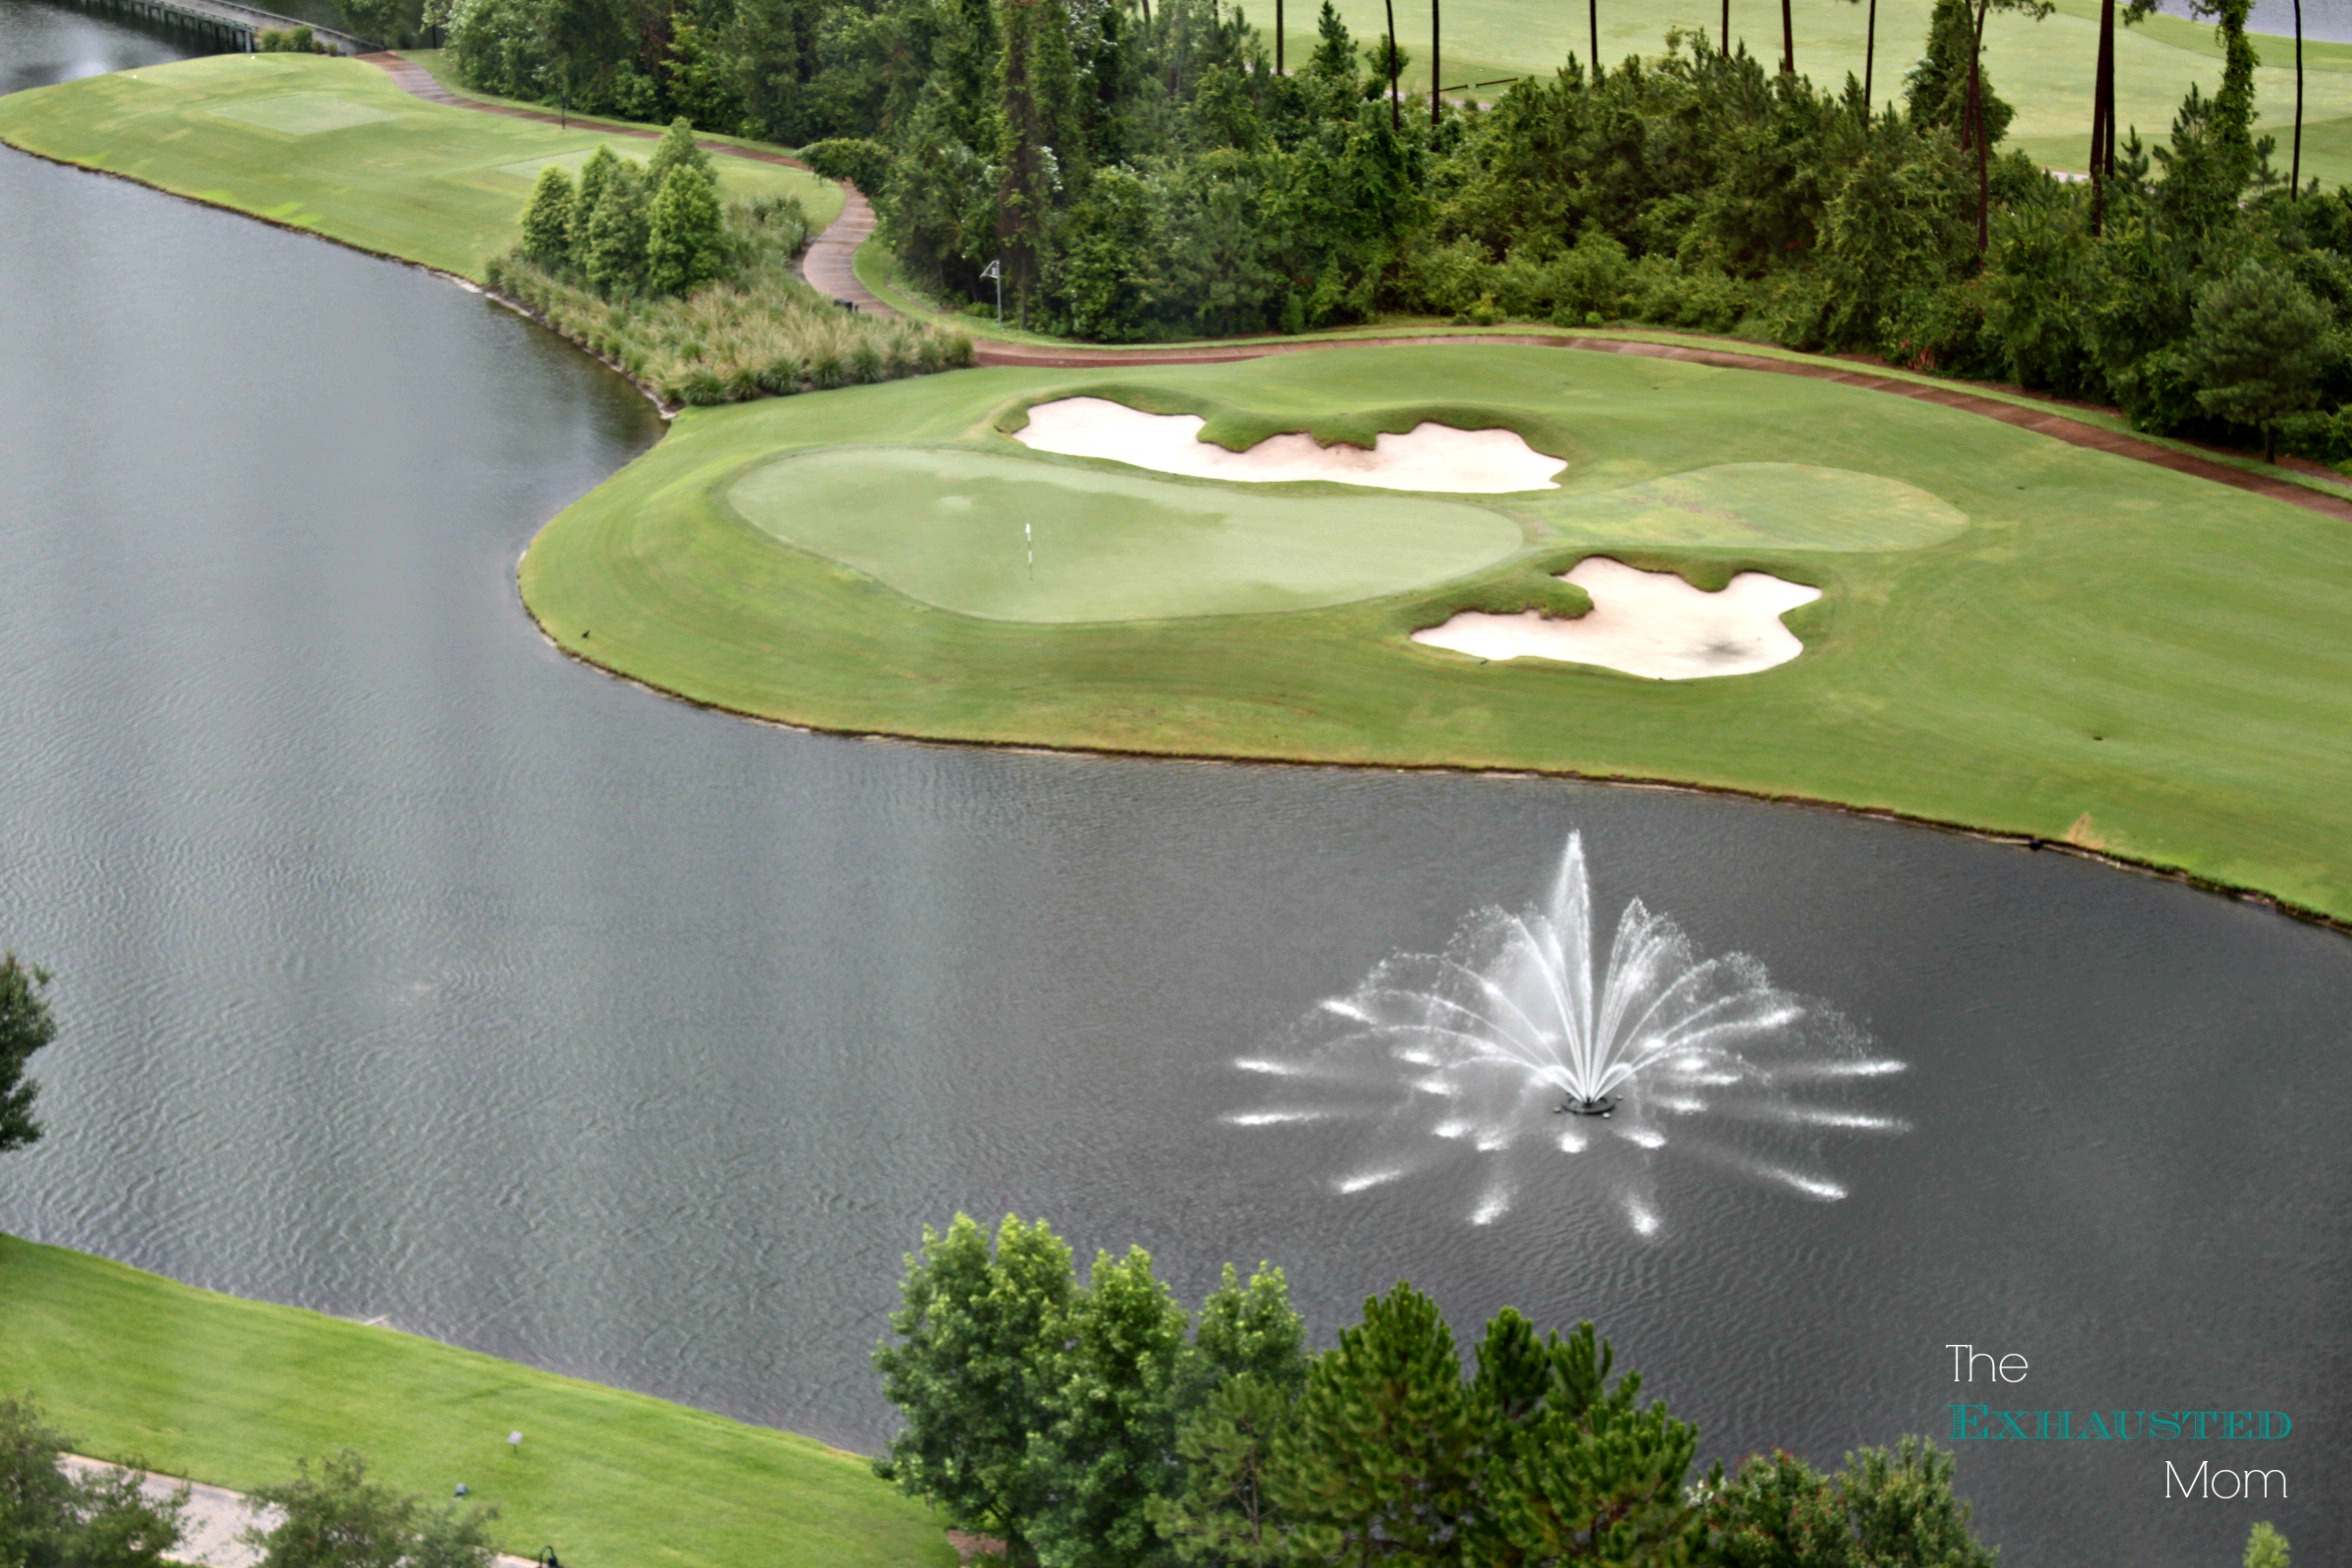 Play a round of golf at the championship 18-hole golf course.